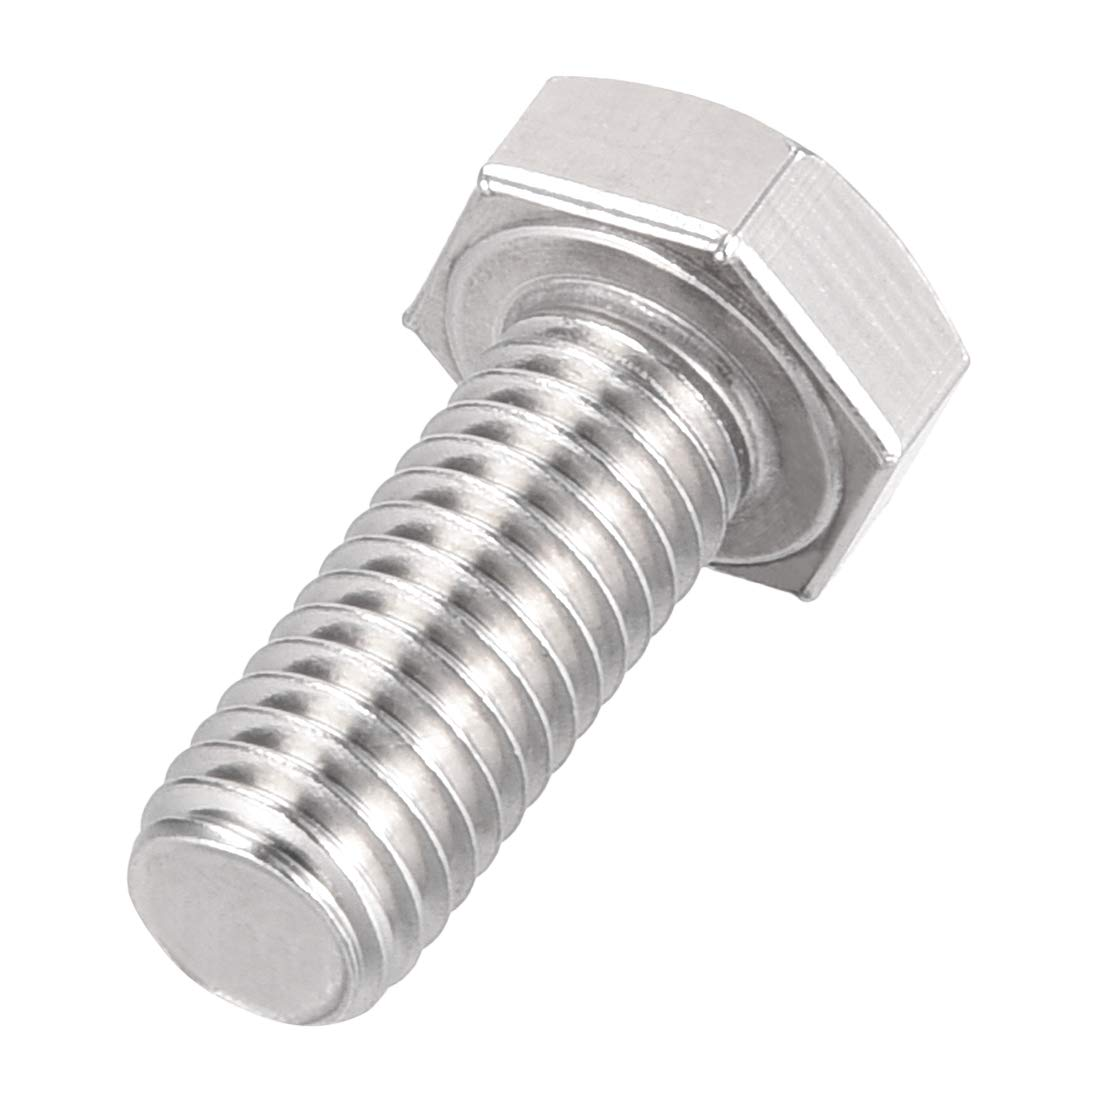 uxcell M8 Thread 50mm 304 Stainless Steel Hex Left Hand Screw Bolts Fastener